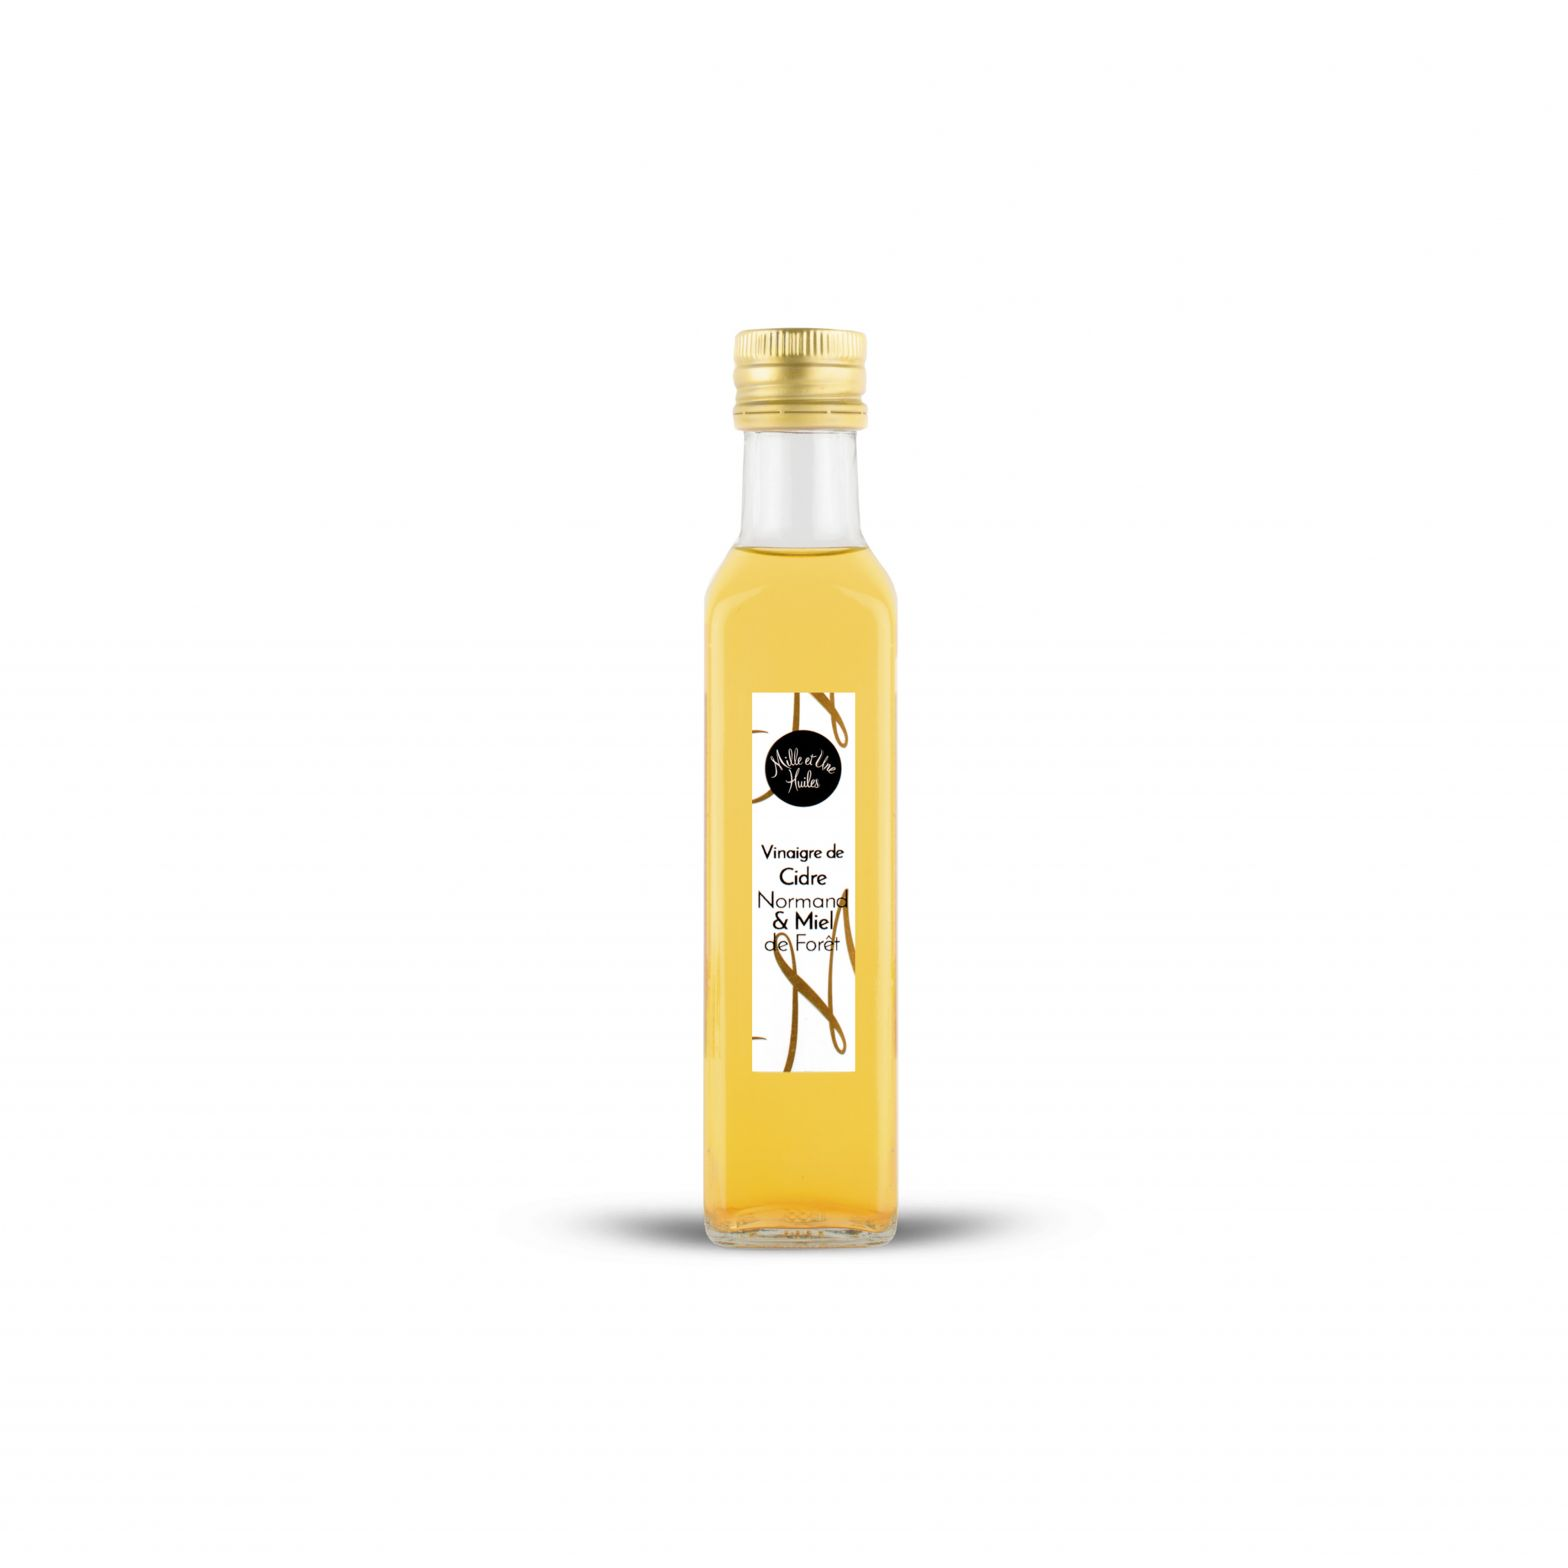 Norman AOC apple cider vinegar with Sologne honey